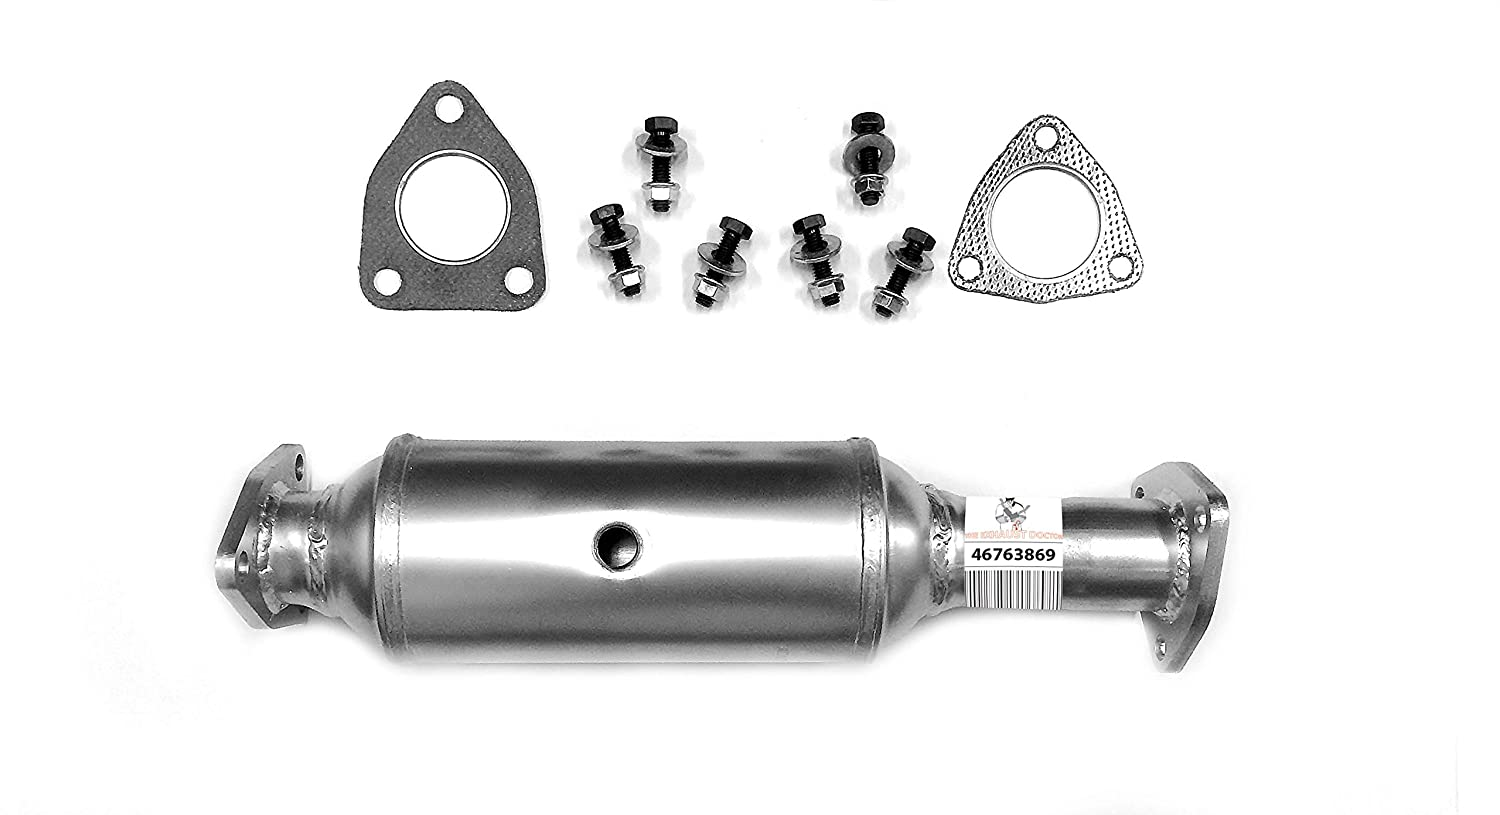 TED Direct-Fit Catalytic Converters Fits 99-03 Acura TL//TL S//01-03 CL//CL S 3.2L//98-02 Accord//99-04 Odyssey 3.0L